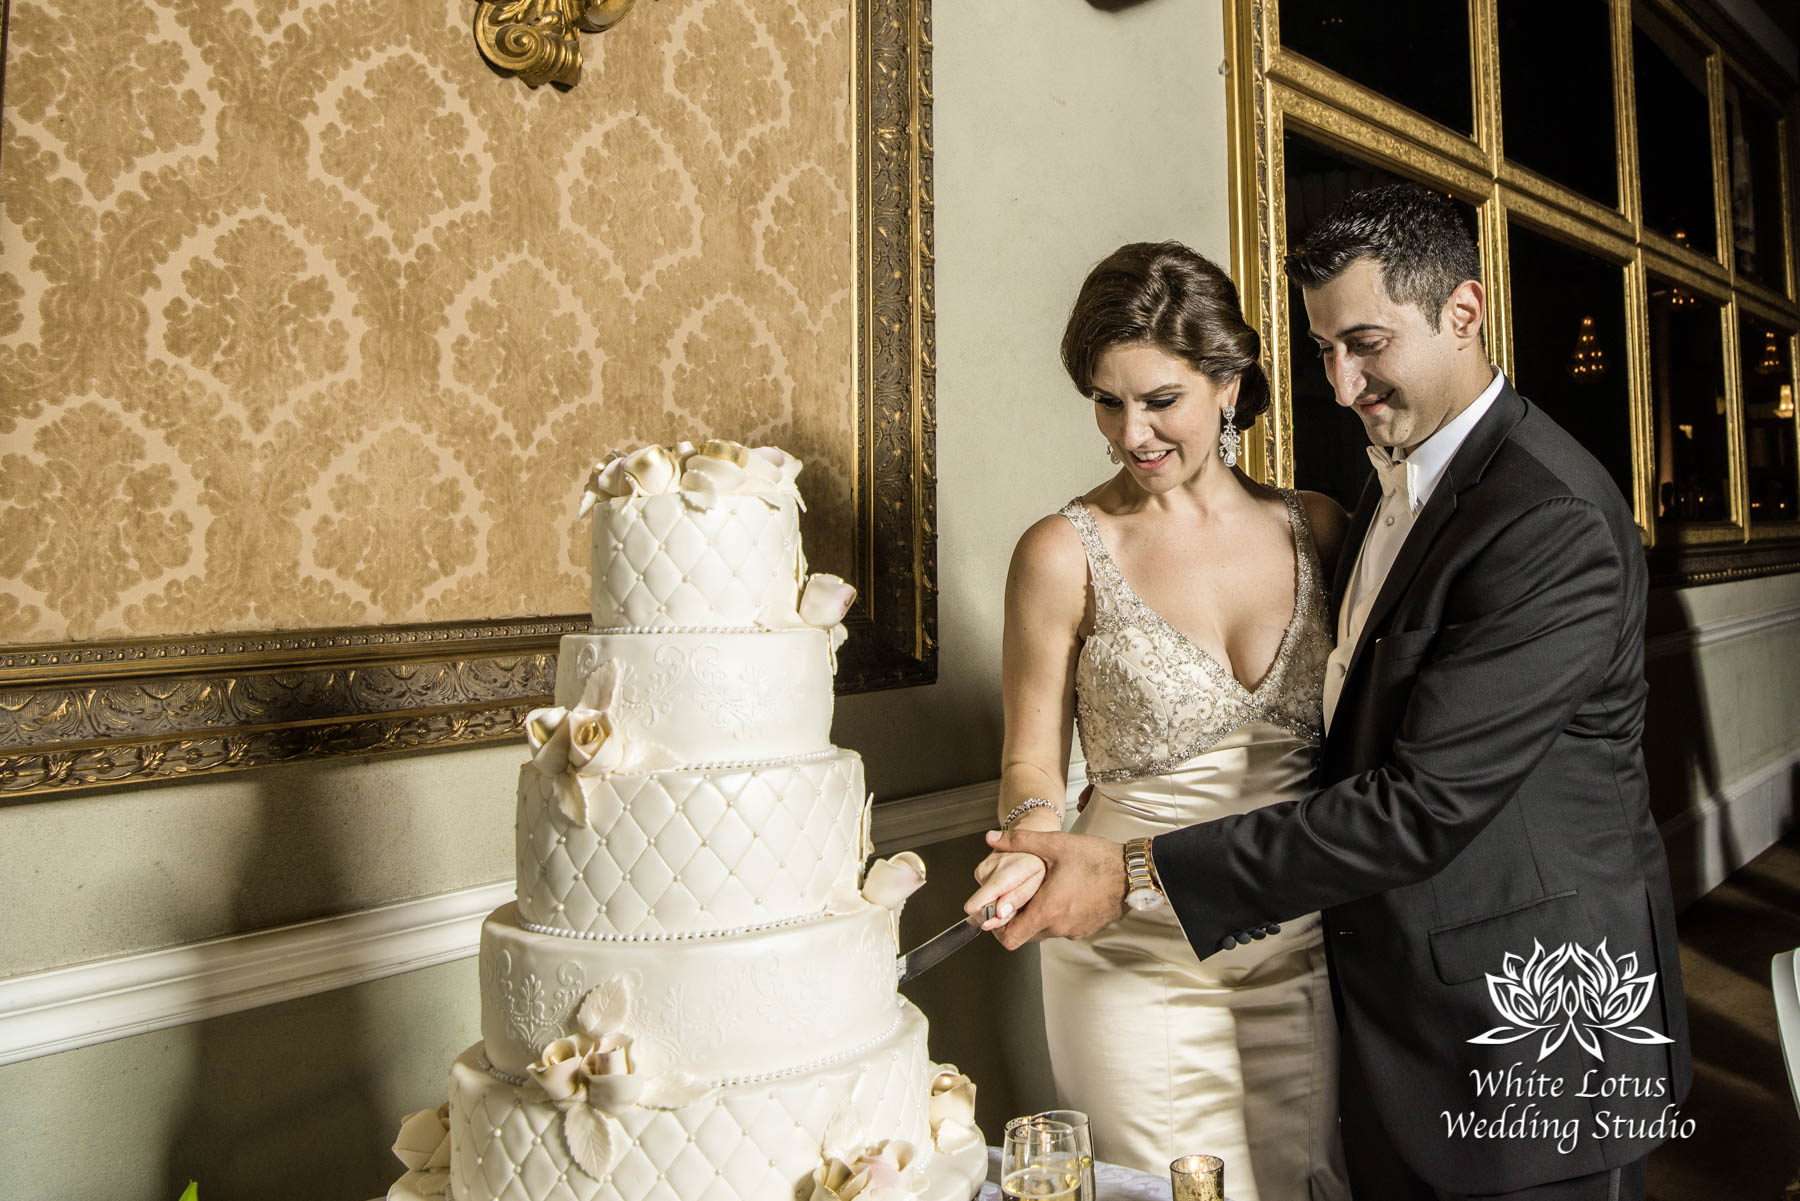 315 - Wedding - Toronto - Liberty Grand - Cake Cutting - PW